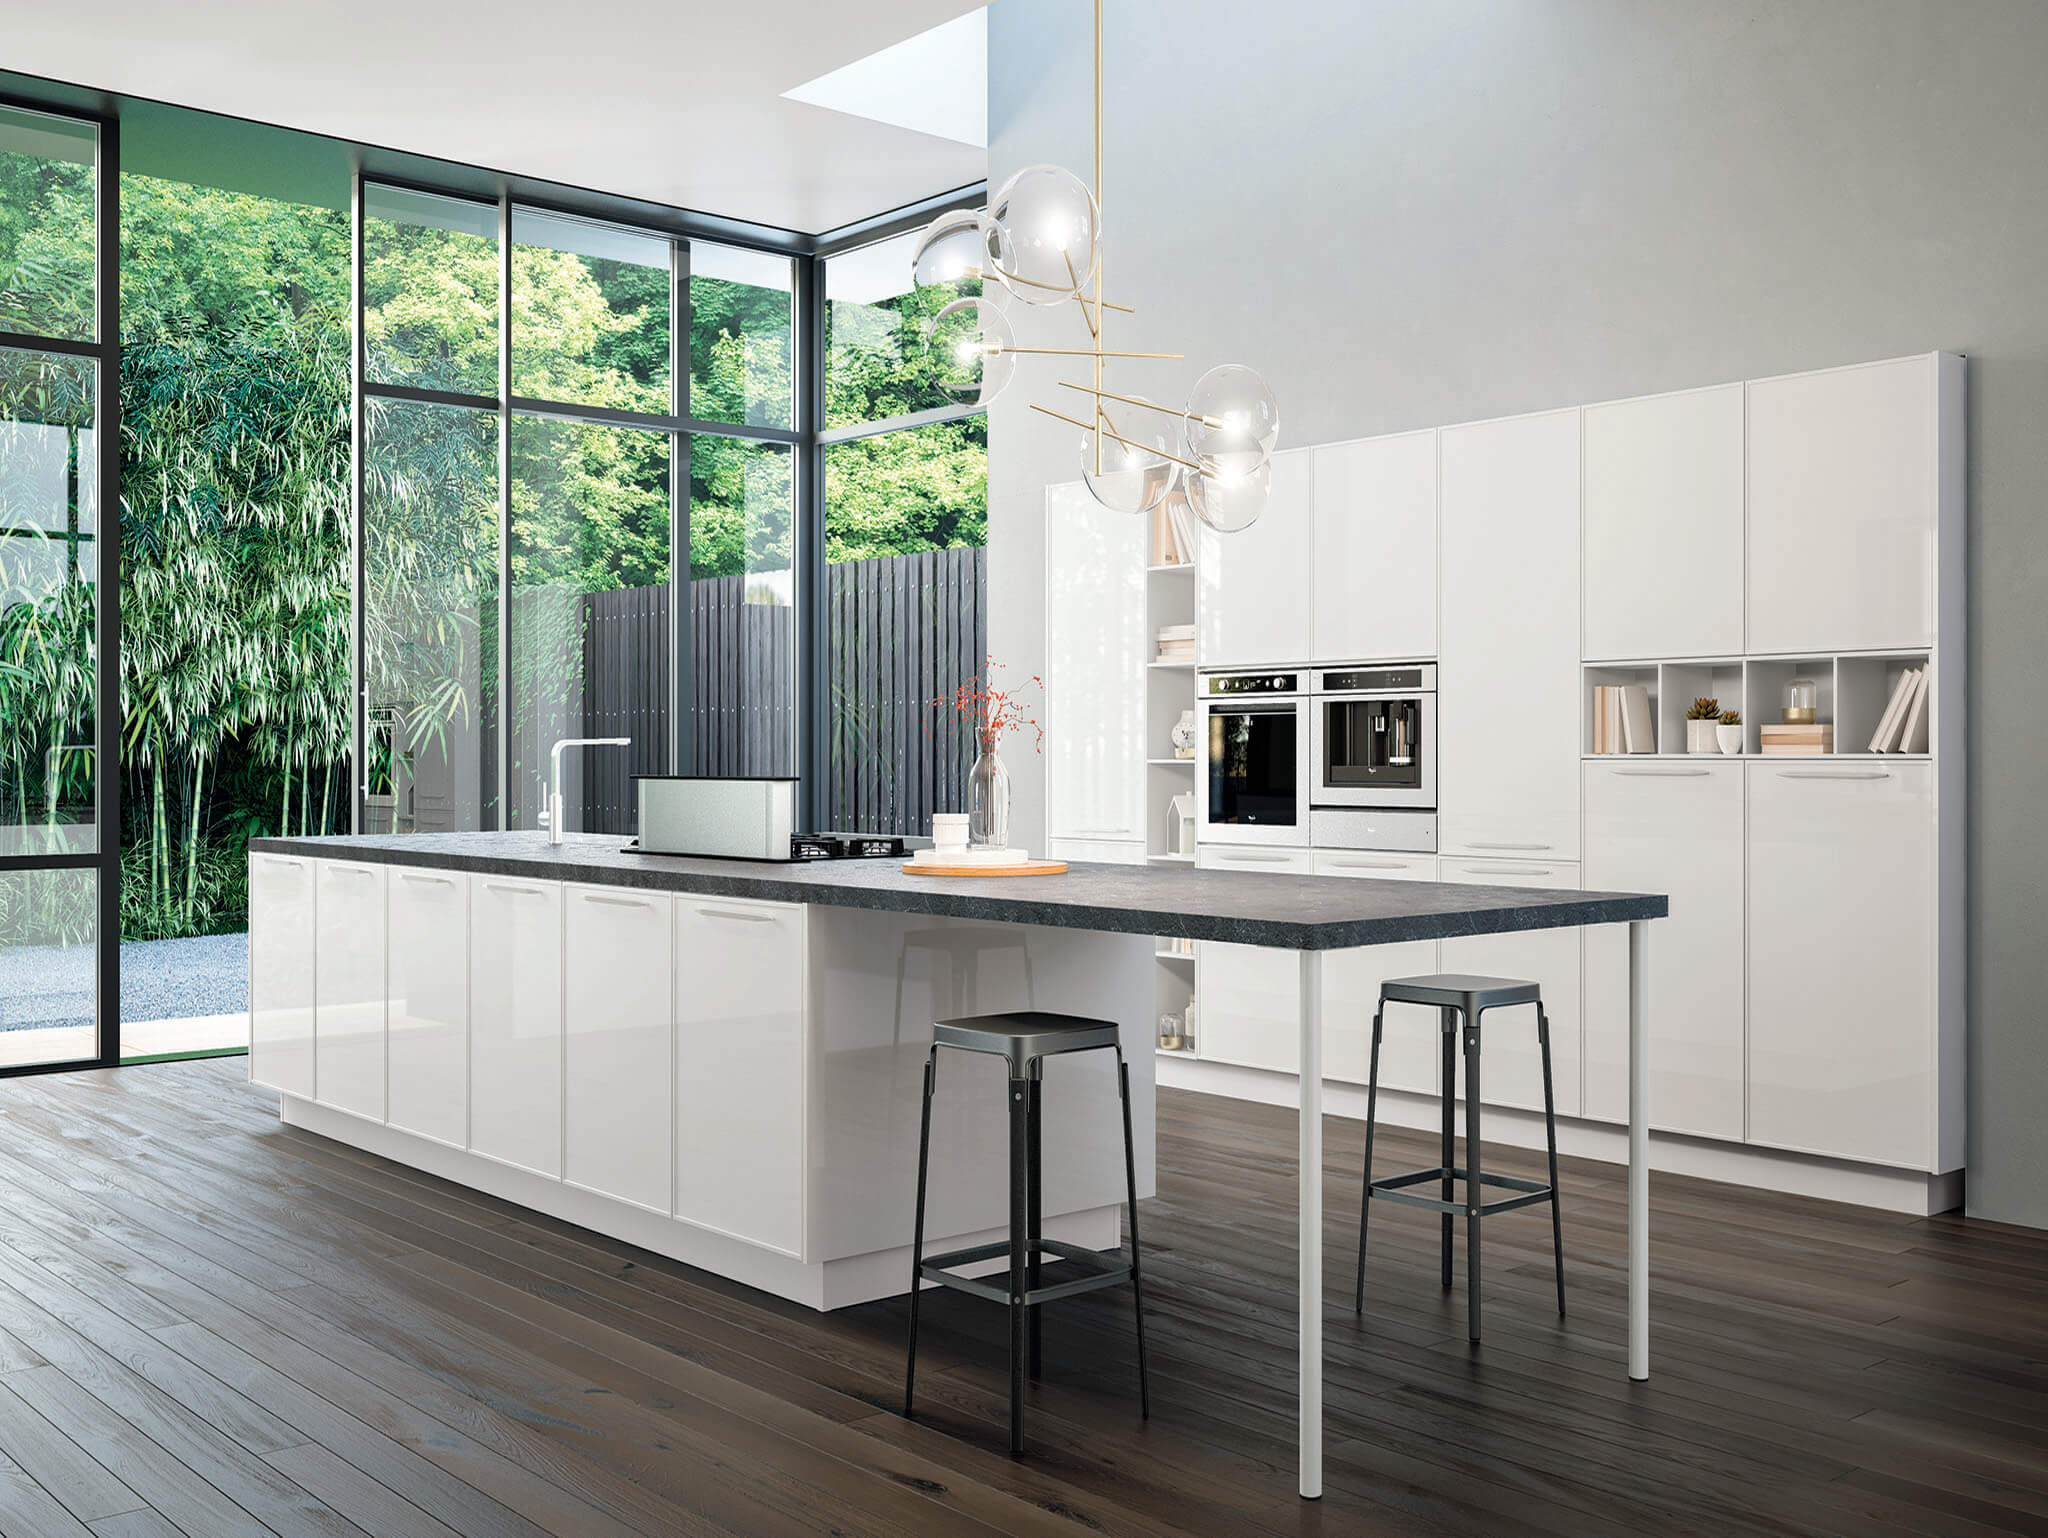 Karen contemporary kitchen cabinet Chicago